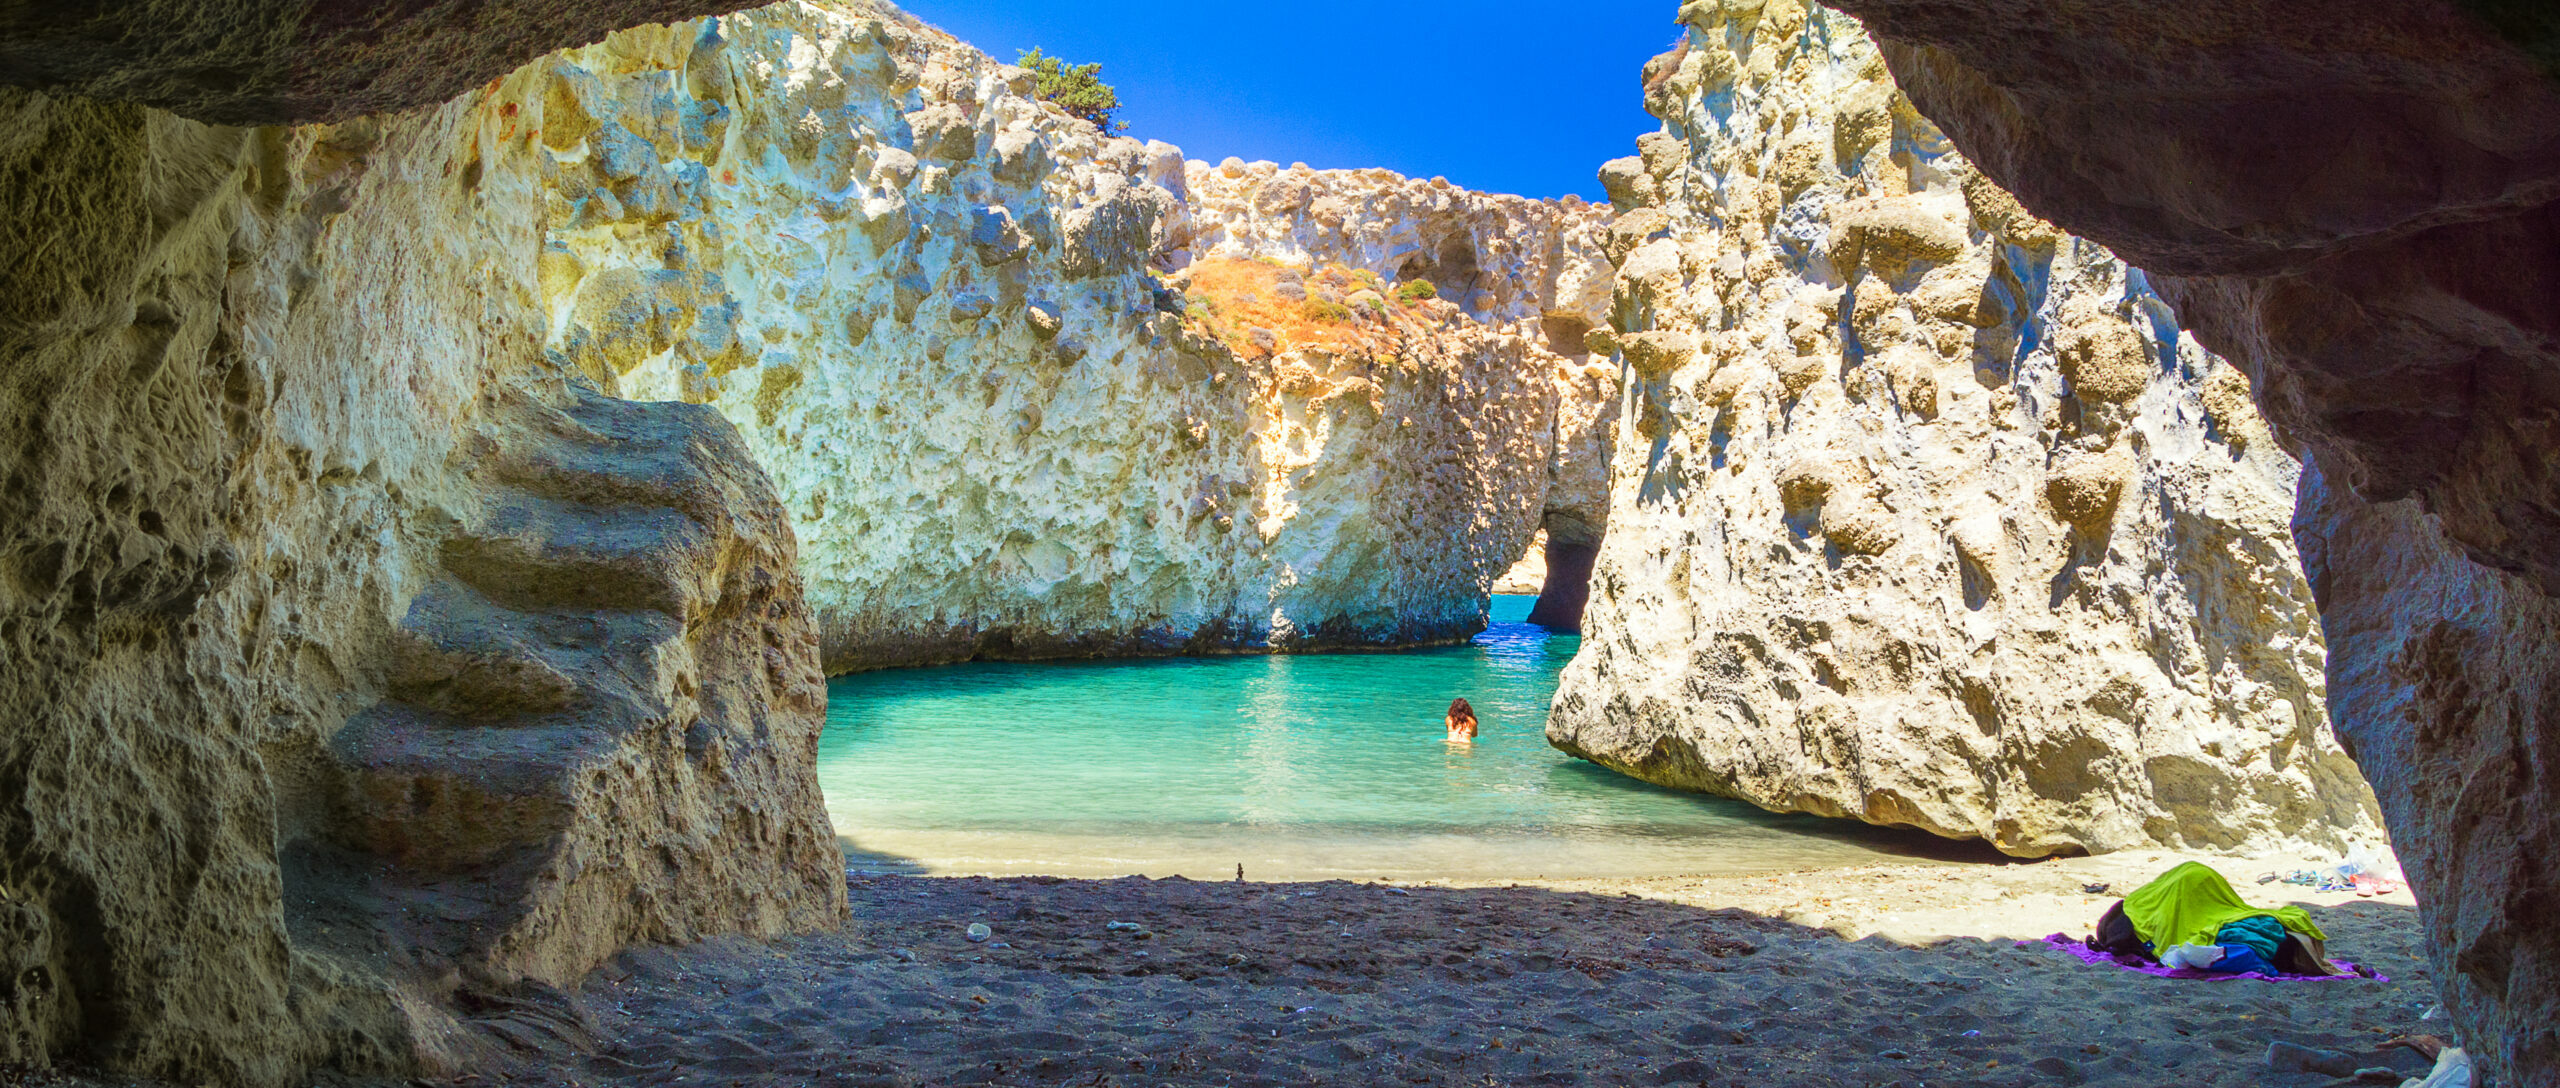 Milos: The island of Cyclades in the list of the 10 most beautiful islands in the world